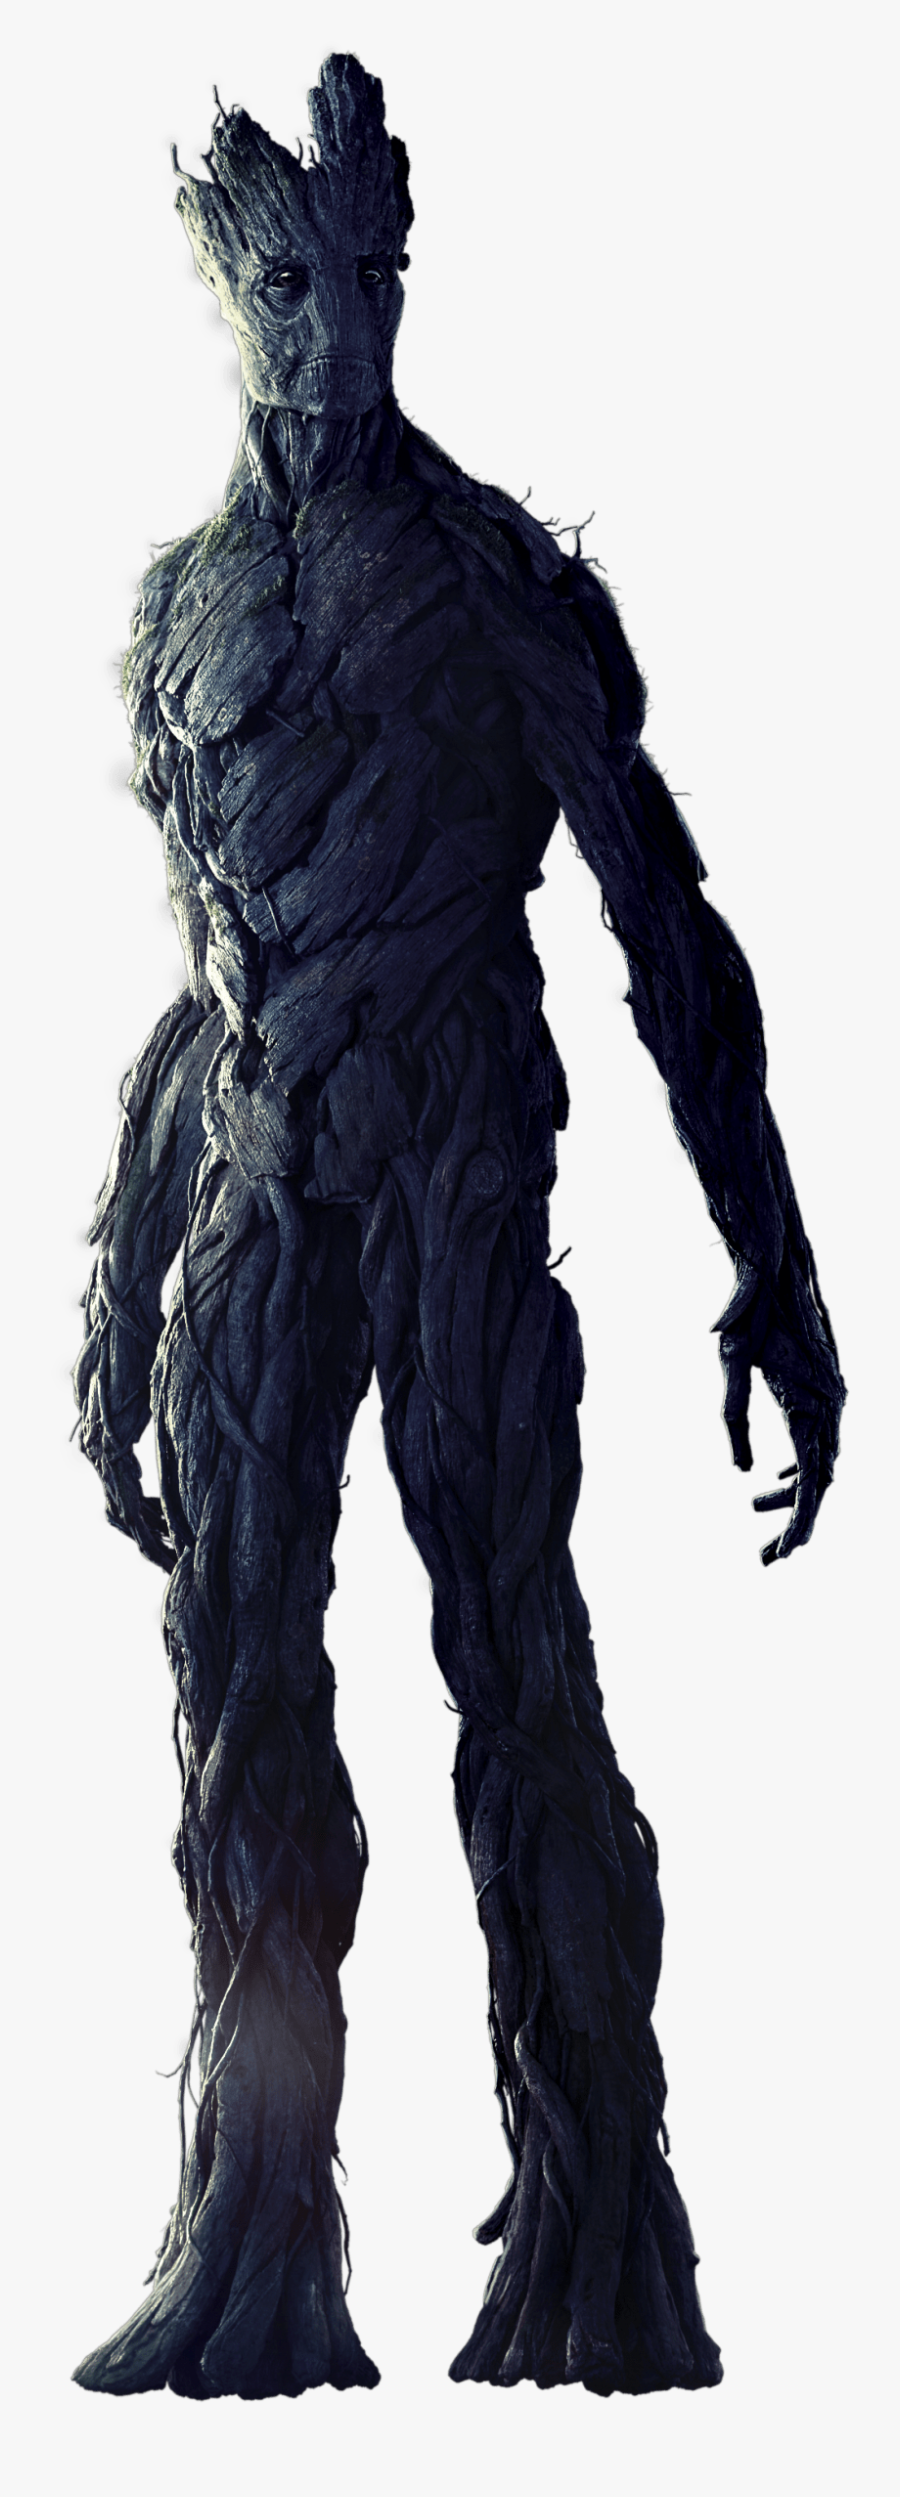 Guardians Of The Galaxy Groot Clip Arts - Guardians Of The Galaxy Groot Png, Transparent Clipart